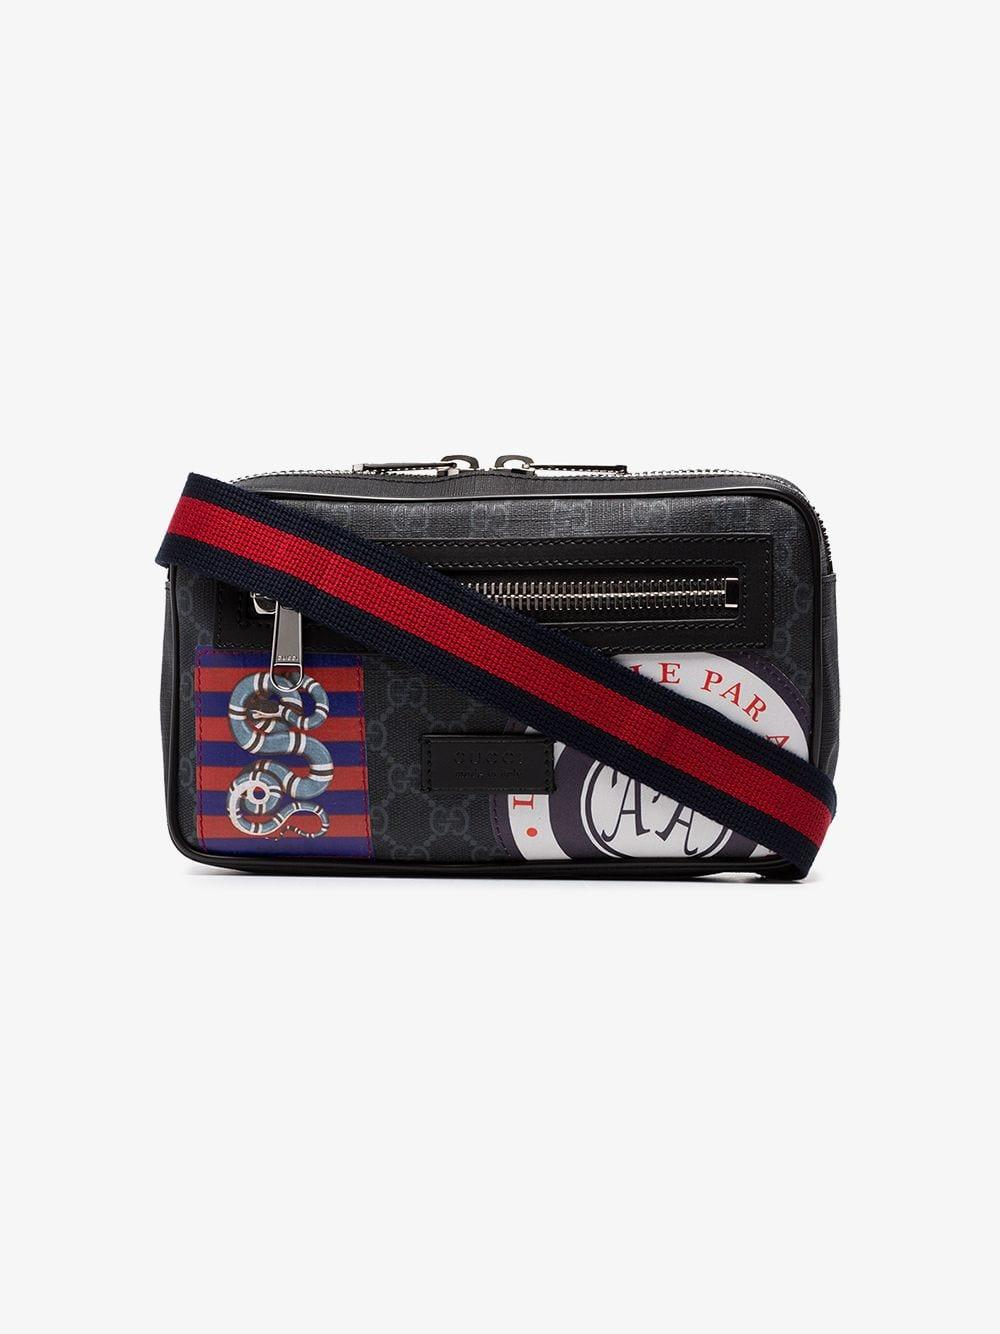 77cde5ae1909 Gucci Black Night Courrier Badge Embellished Crossbody Bag in Black ...